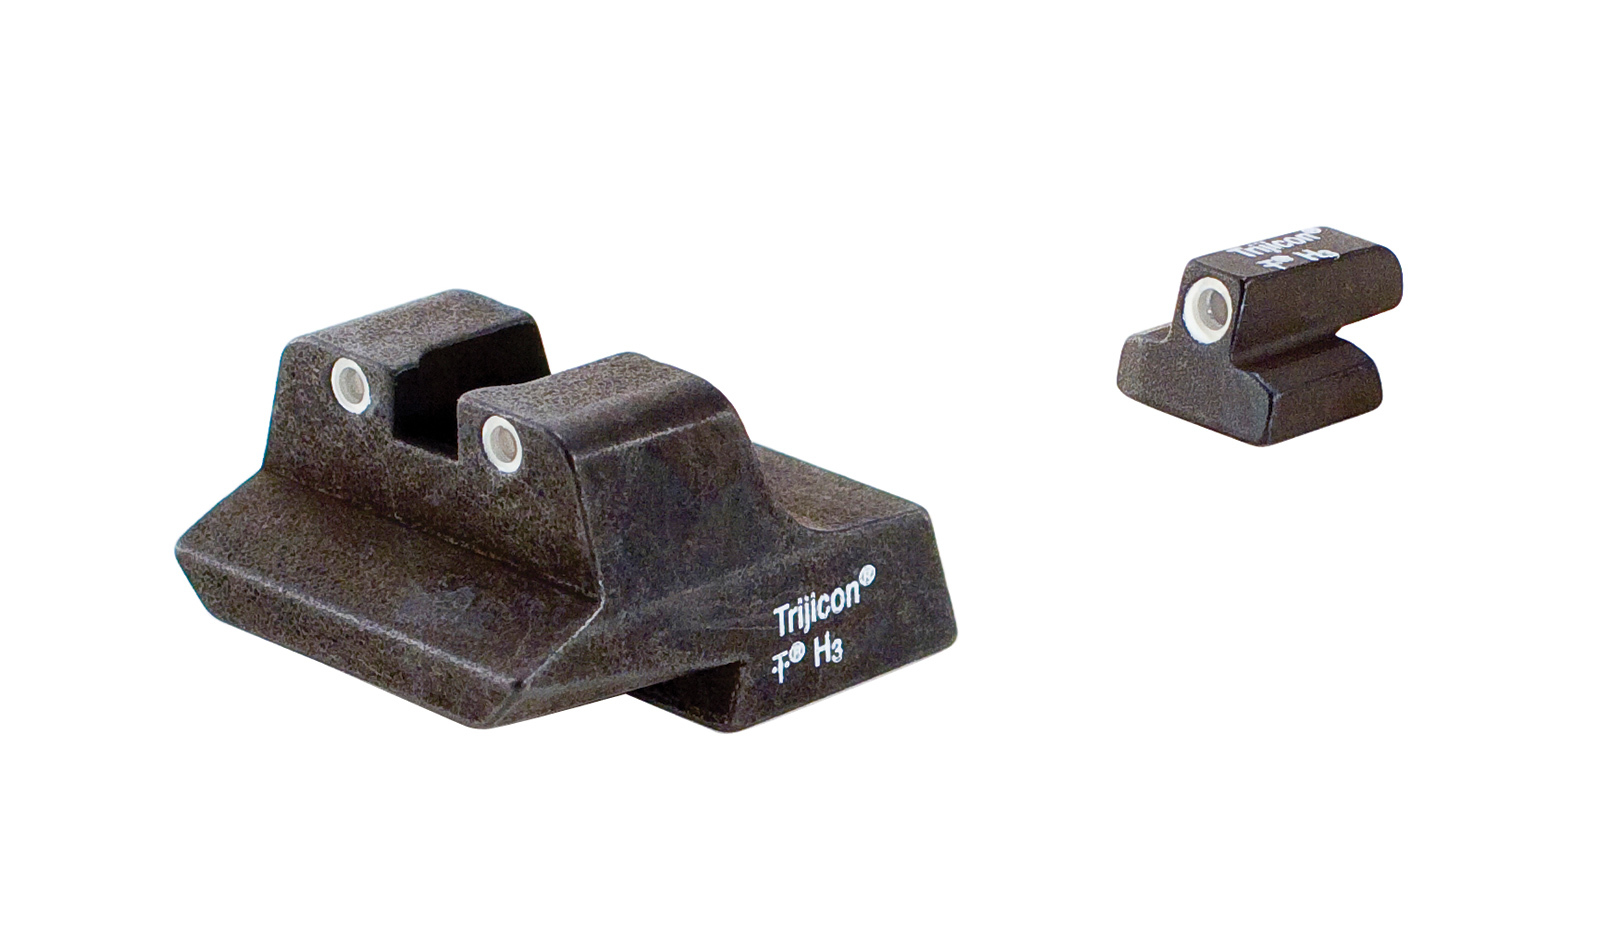 Trijicon Bright & Tough™ Night Sights - Smith & Wesson Chief's Special 40 / 45